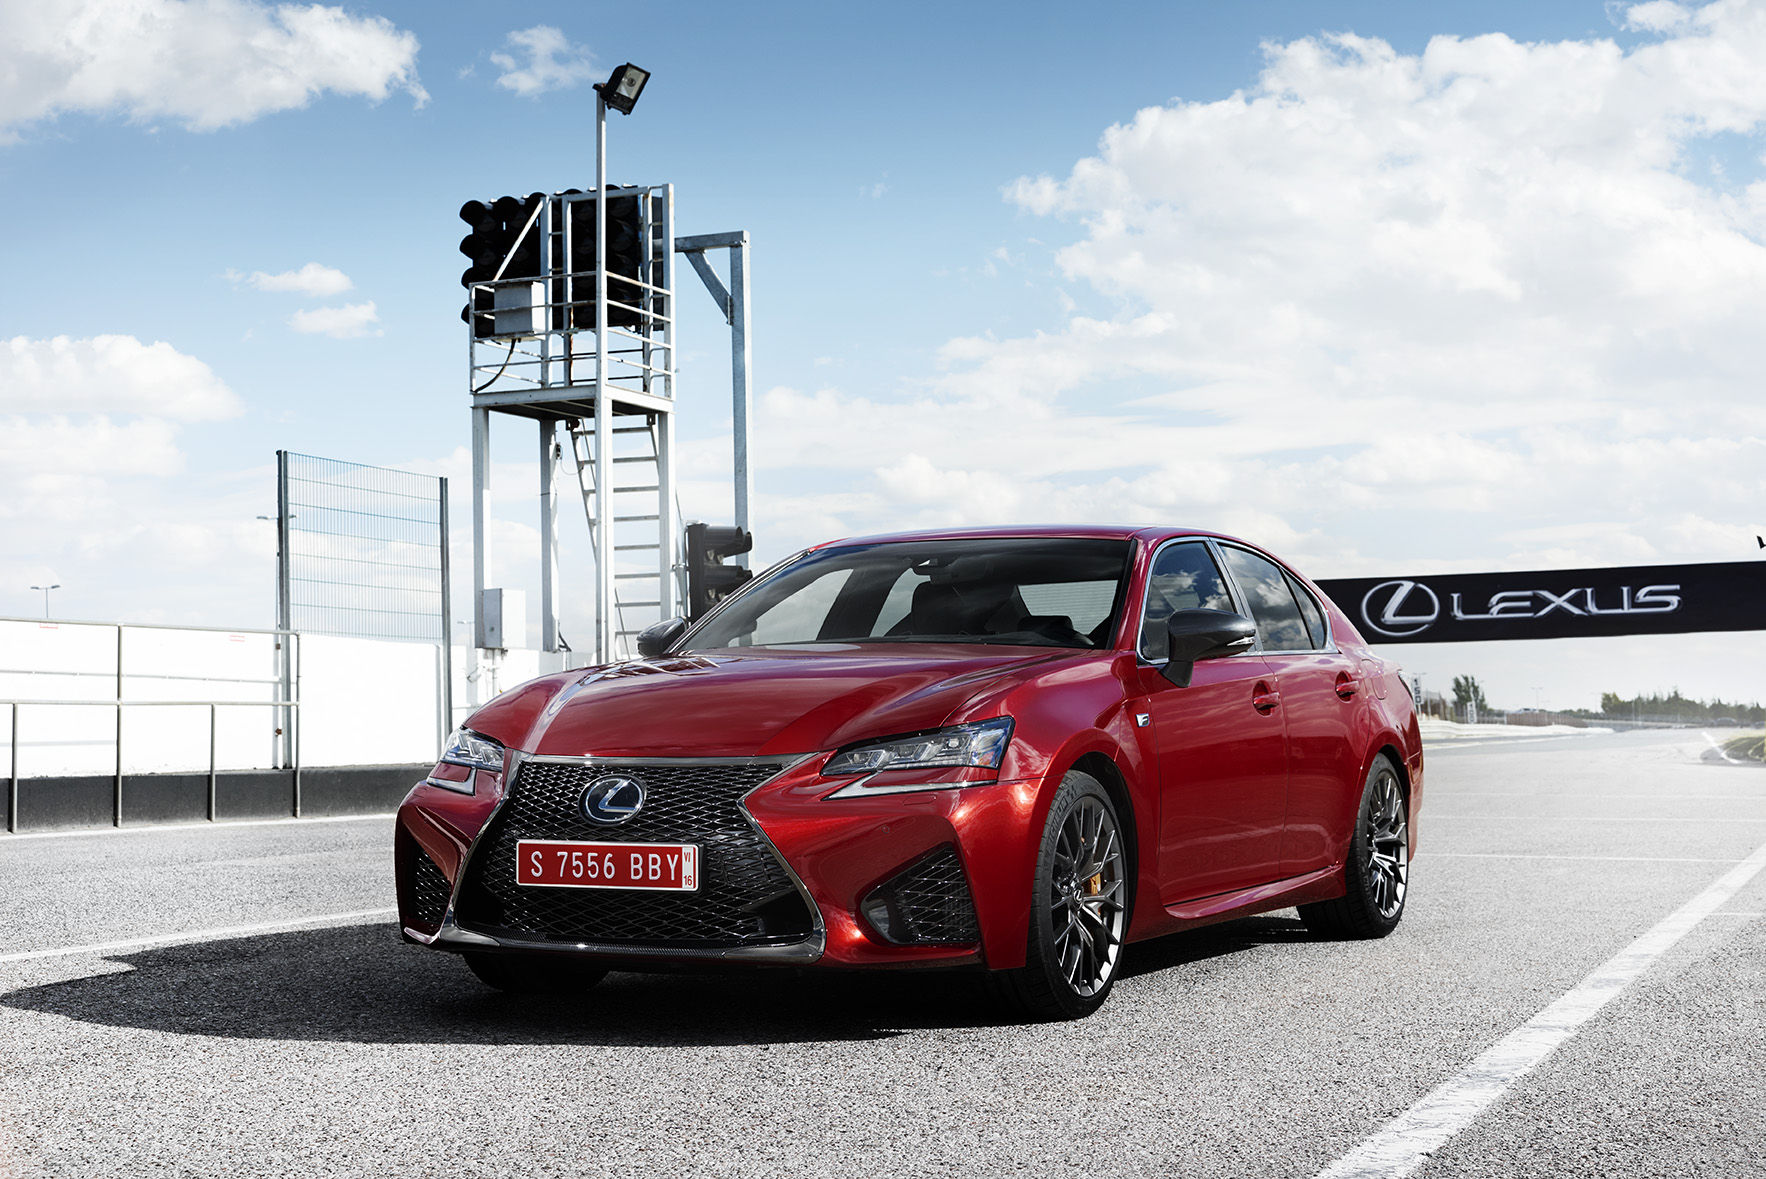 2016 Lexus GS F Review Ratings Specs Prices and s The